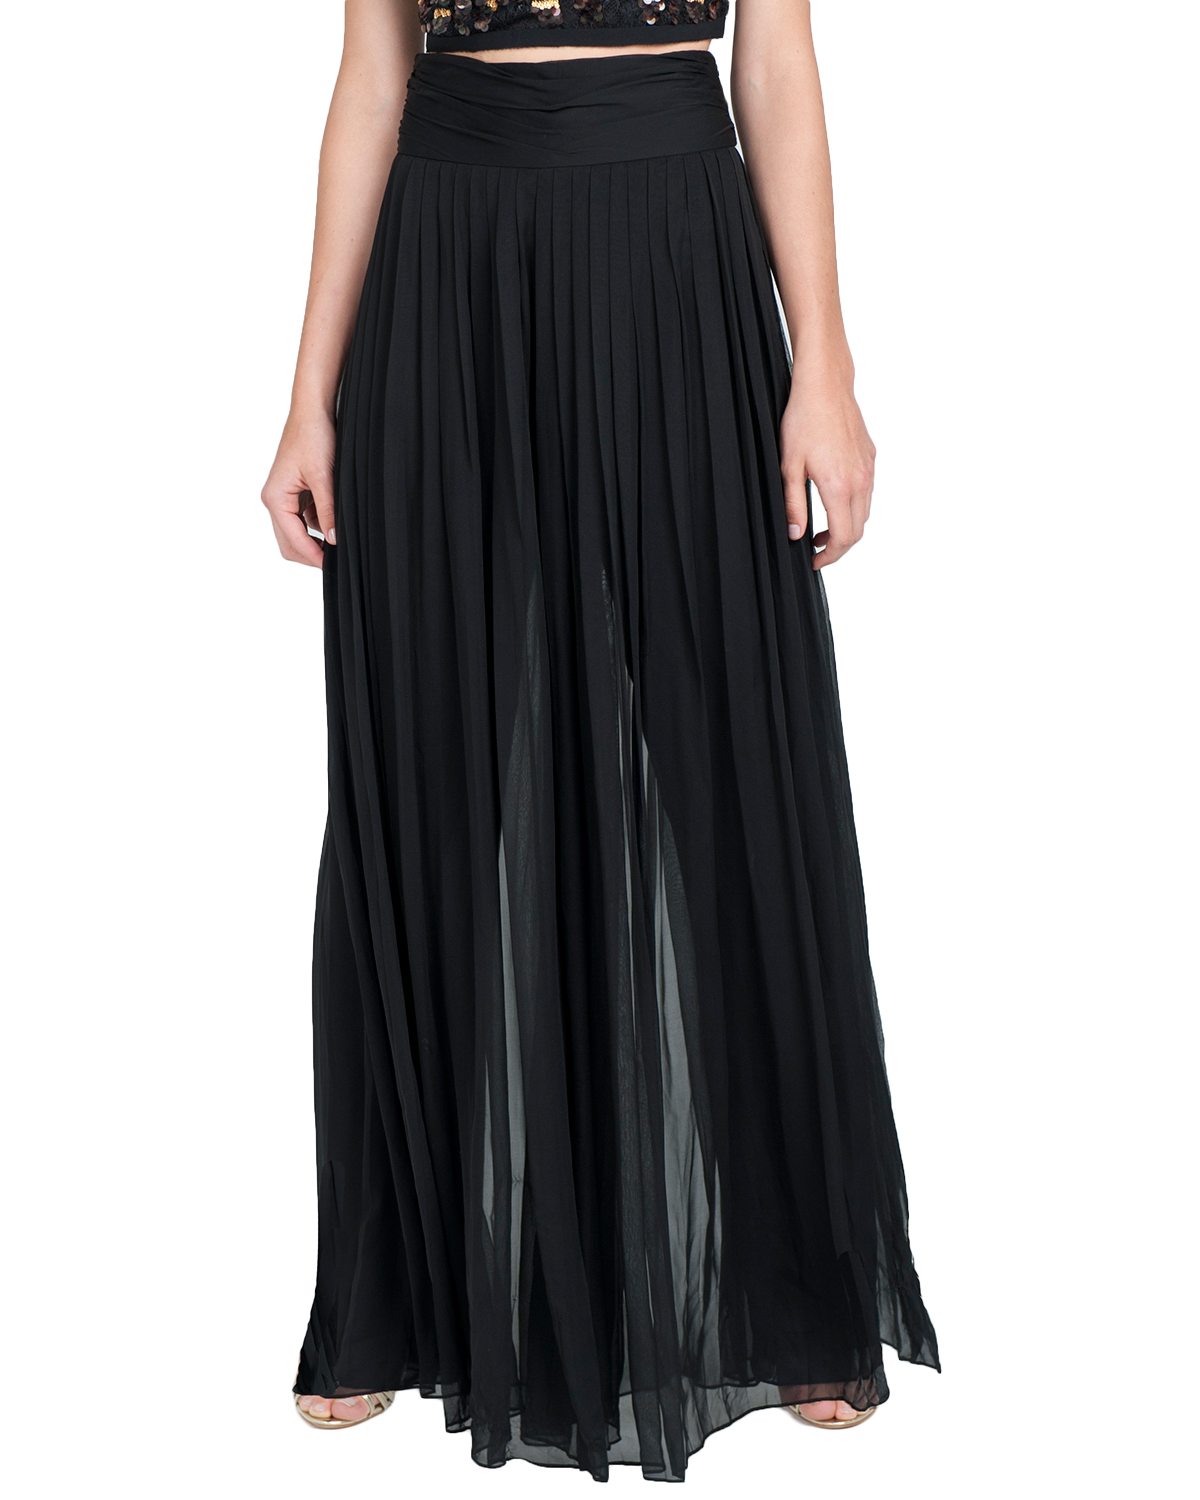 Badgley mischka Sheer Pleated Wide Leg Pants in Black | Lyst